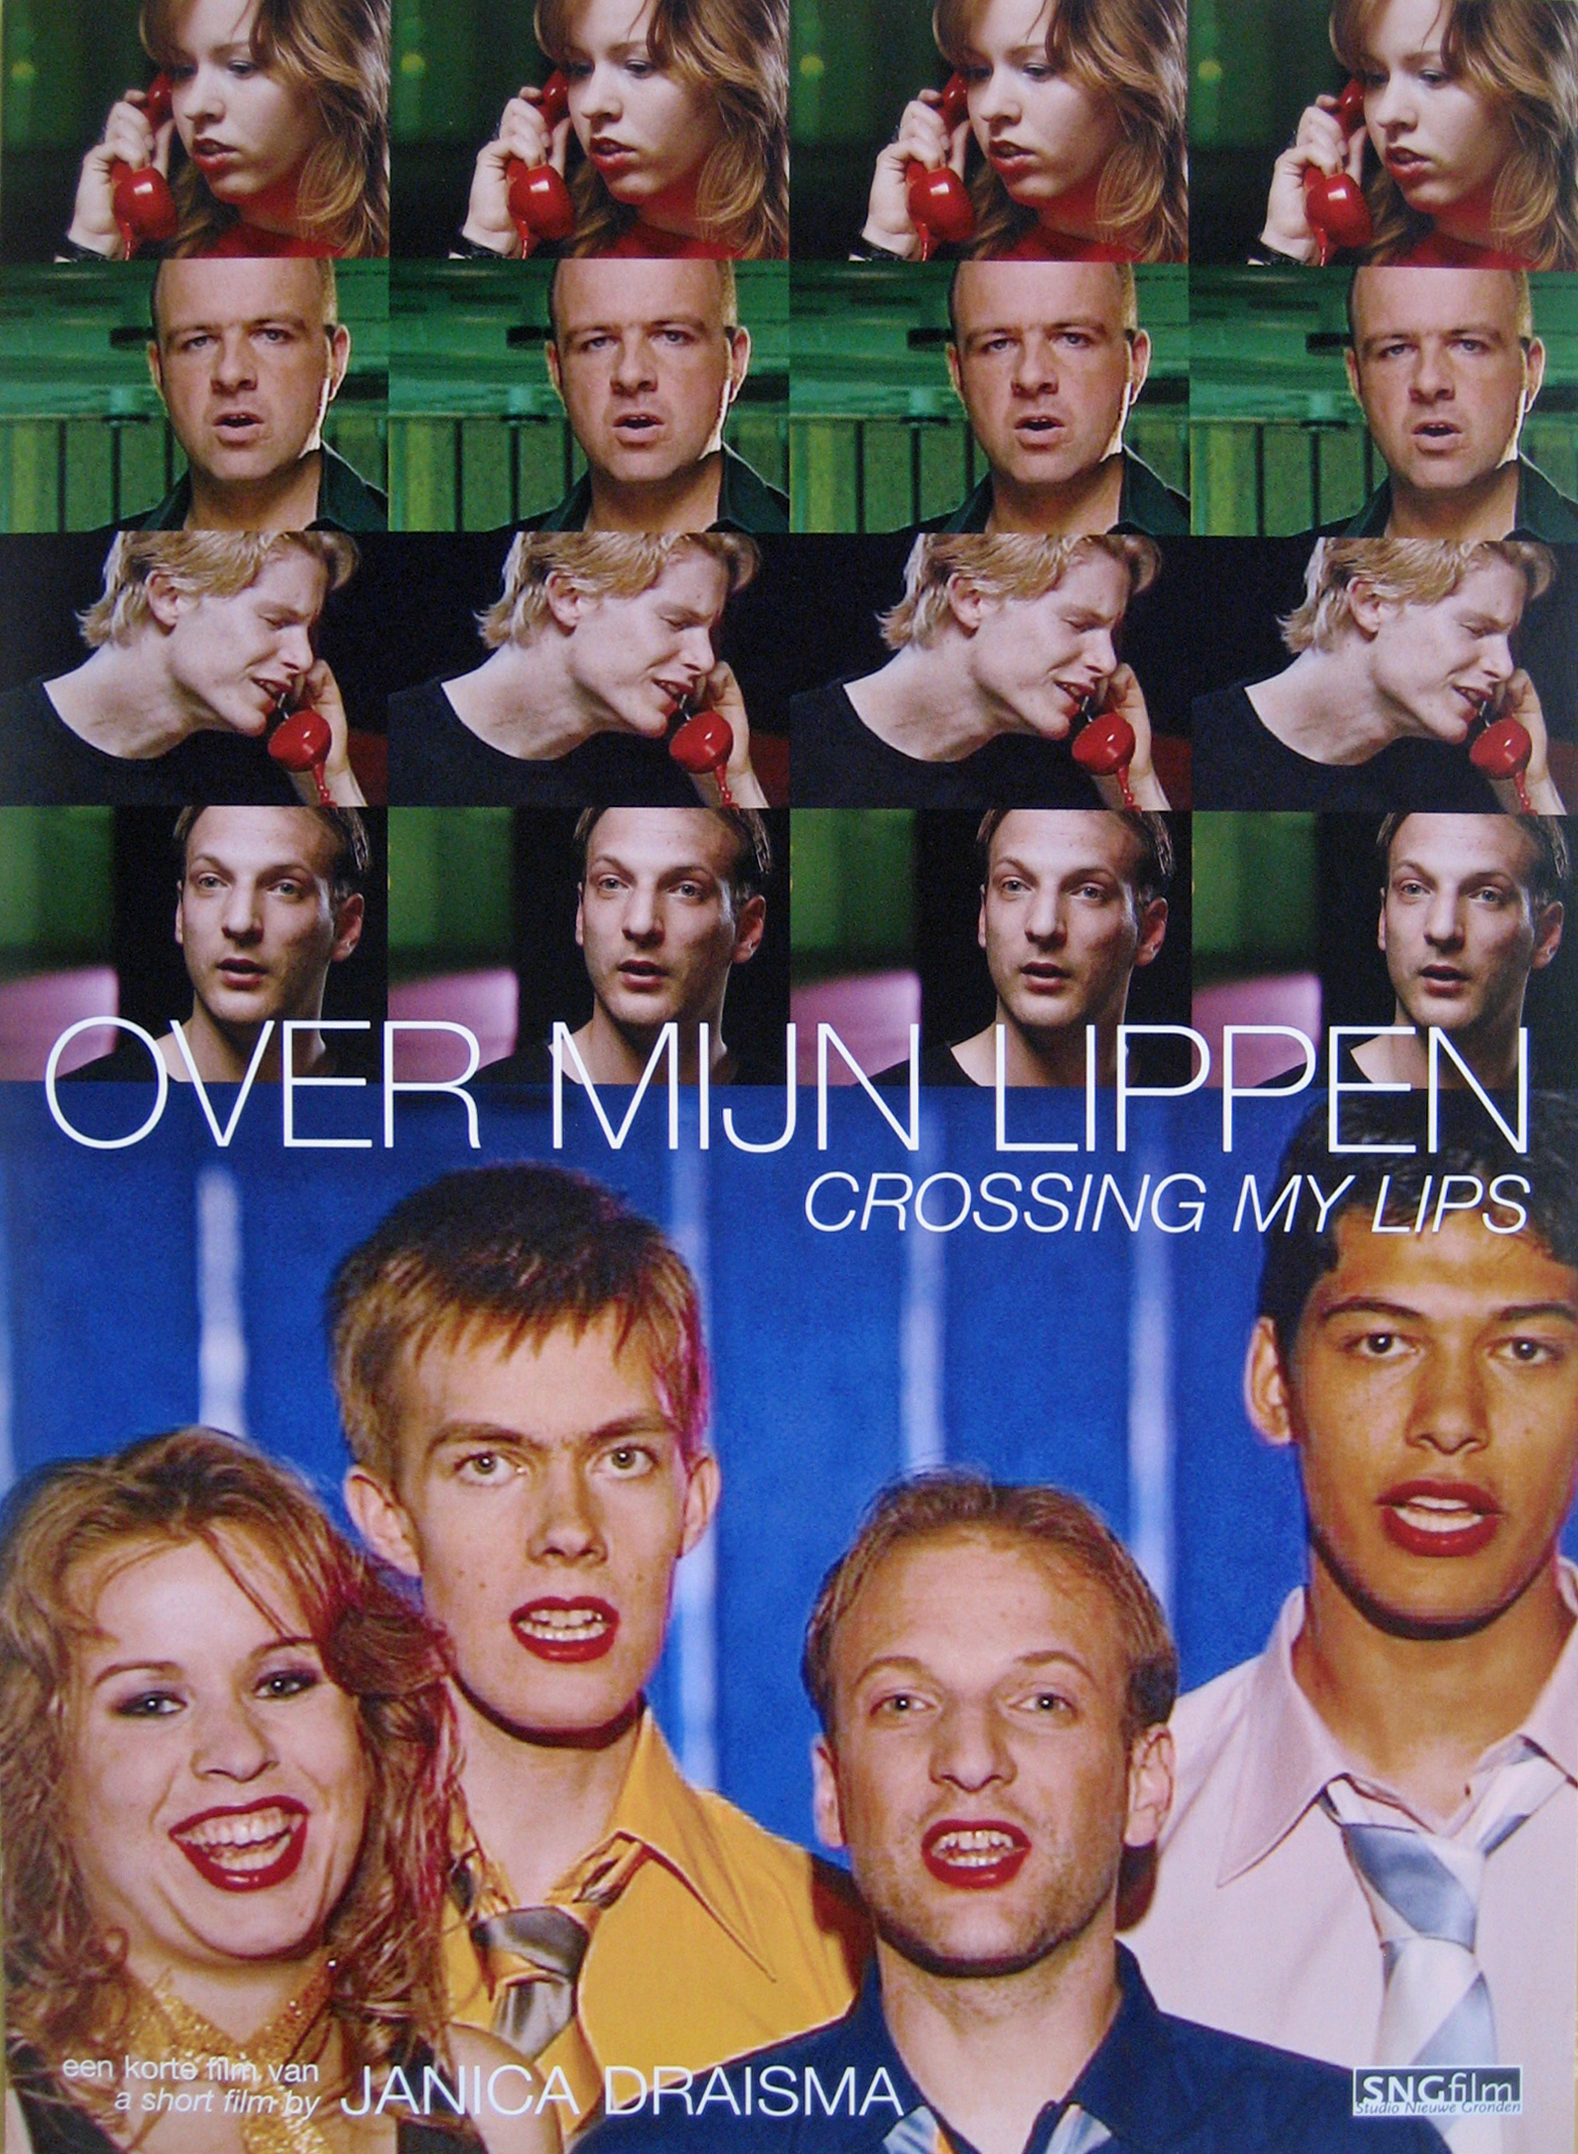 DVD Over mijn lippen